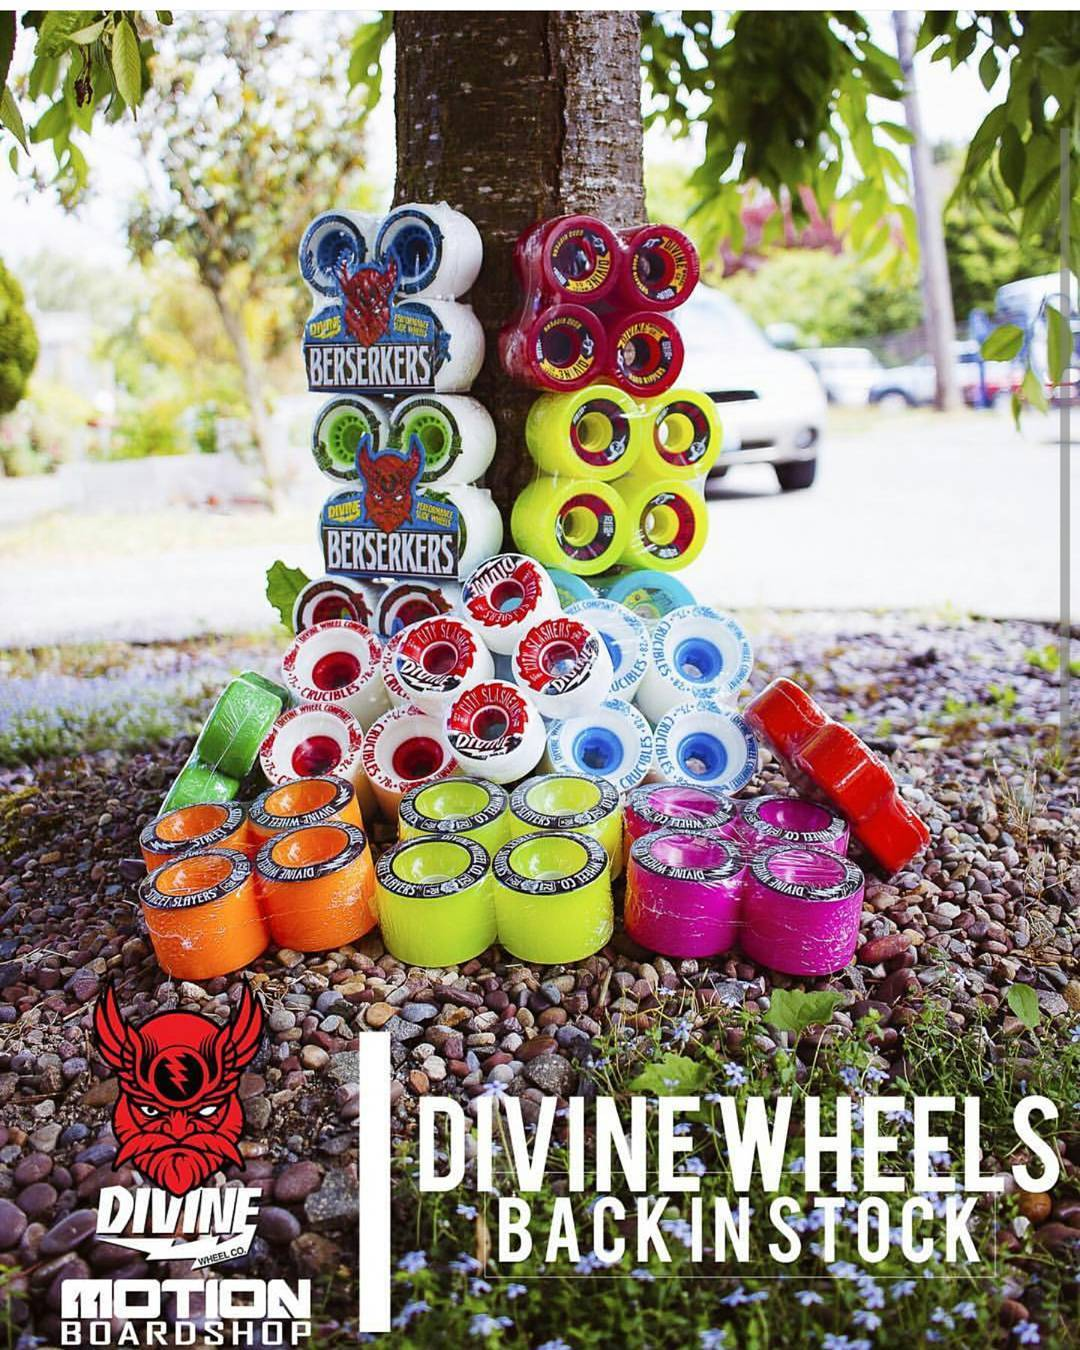 @motionboardshop are now fully stocked with #divinewheels! Get yours